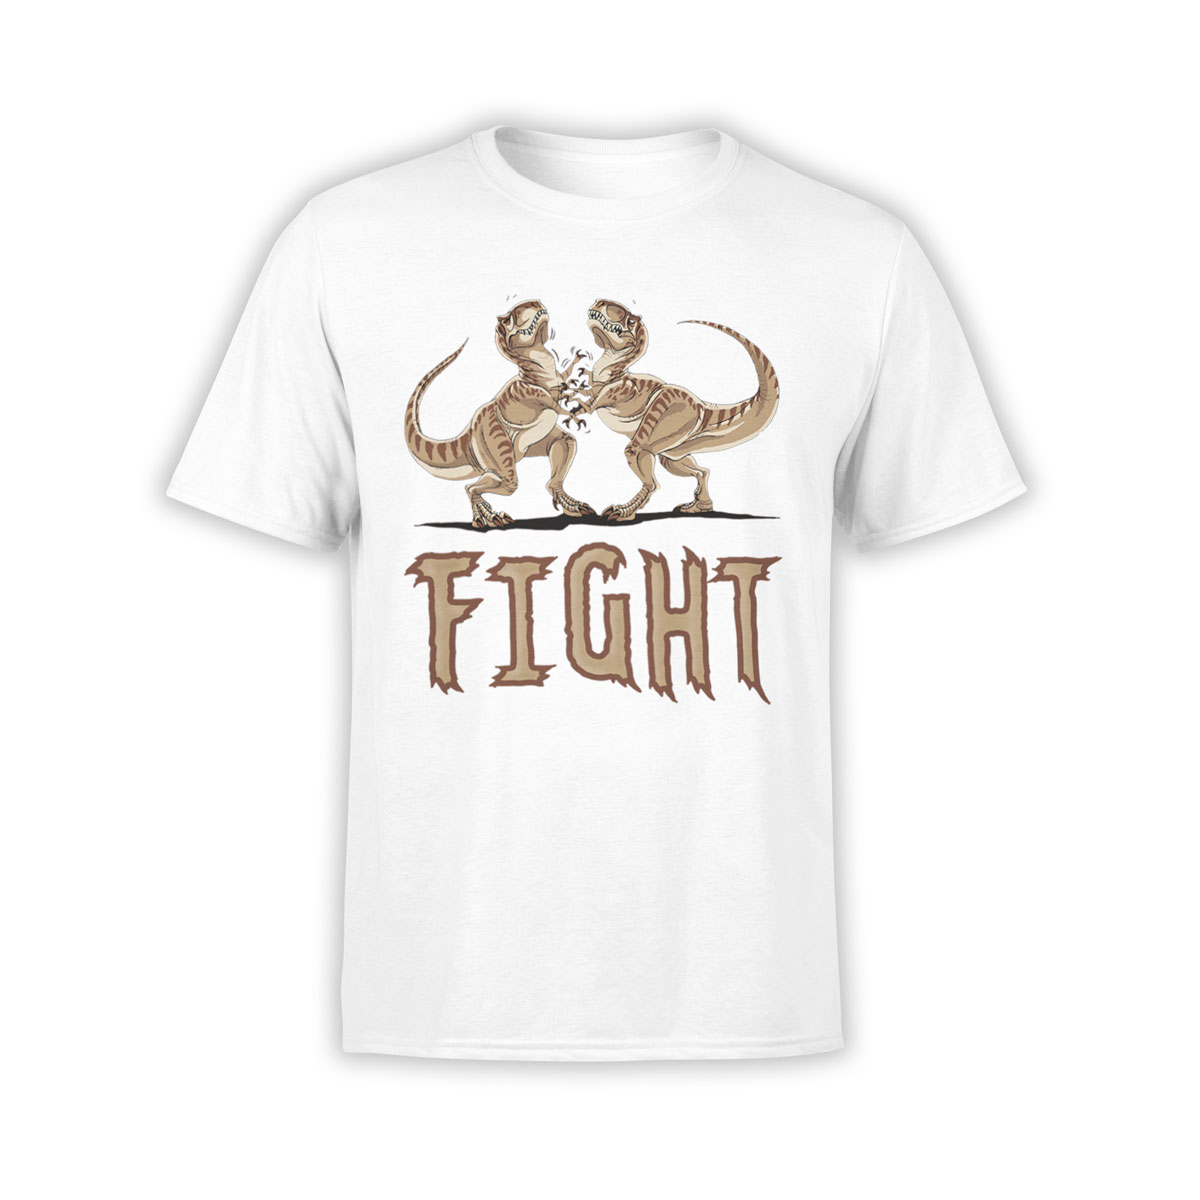 Funny t shirts fight unisex t shirt 100 ultra cotton for Comic t shirts online